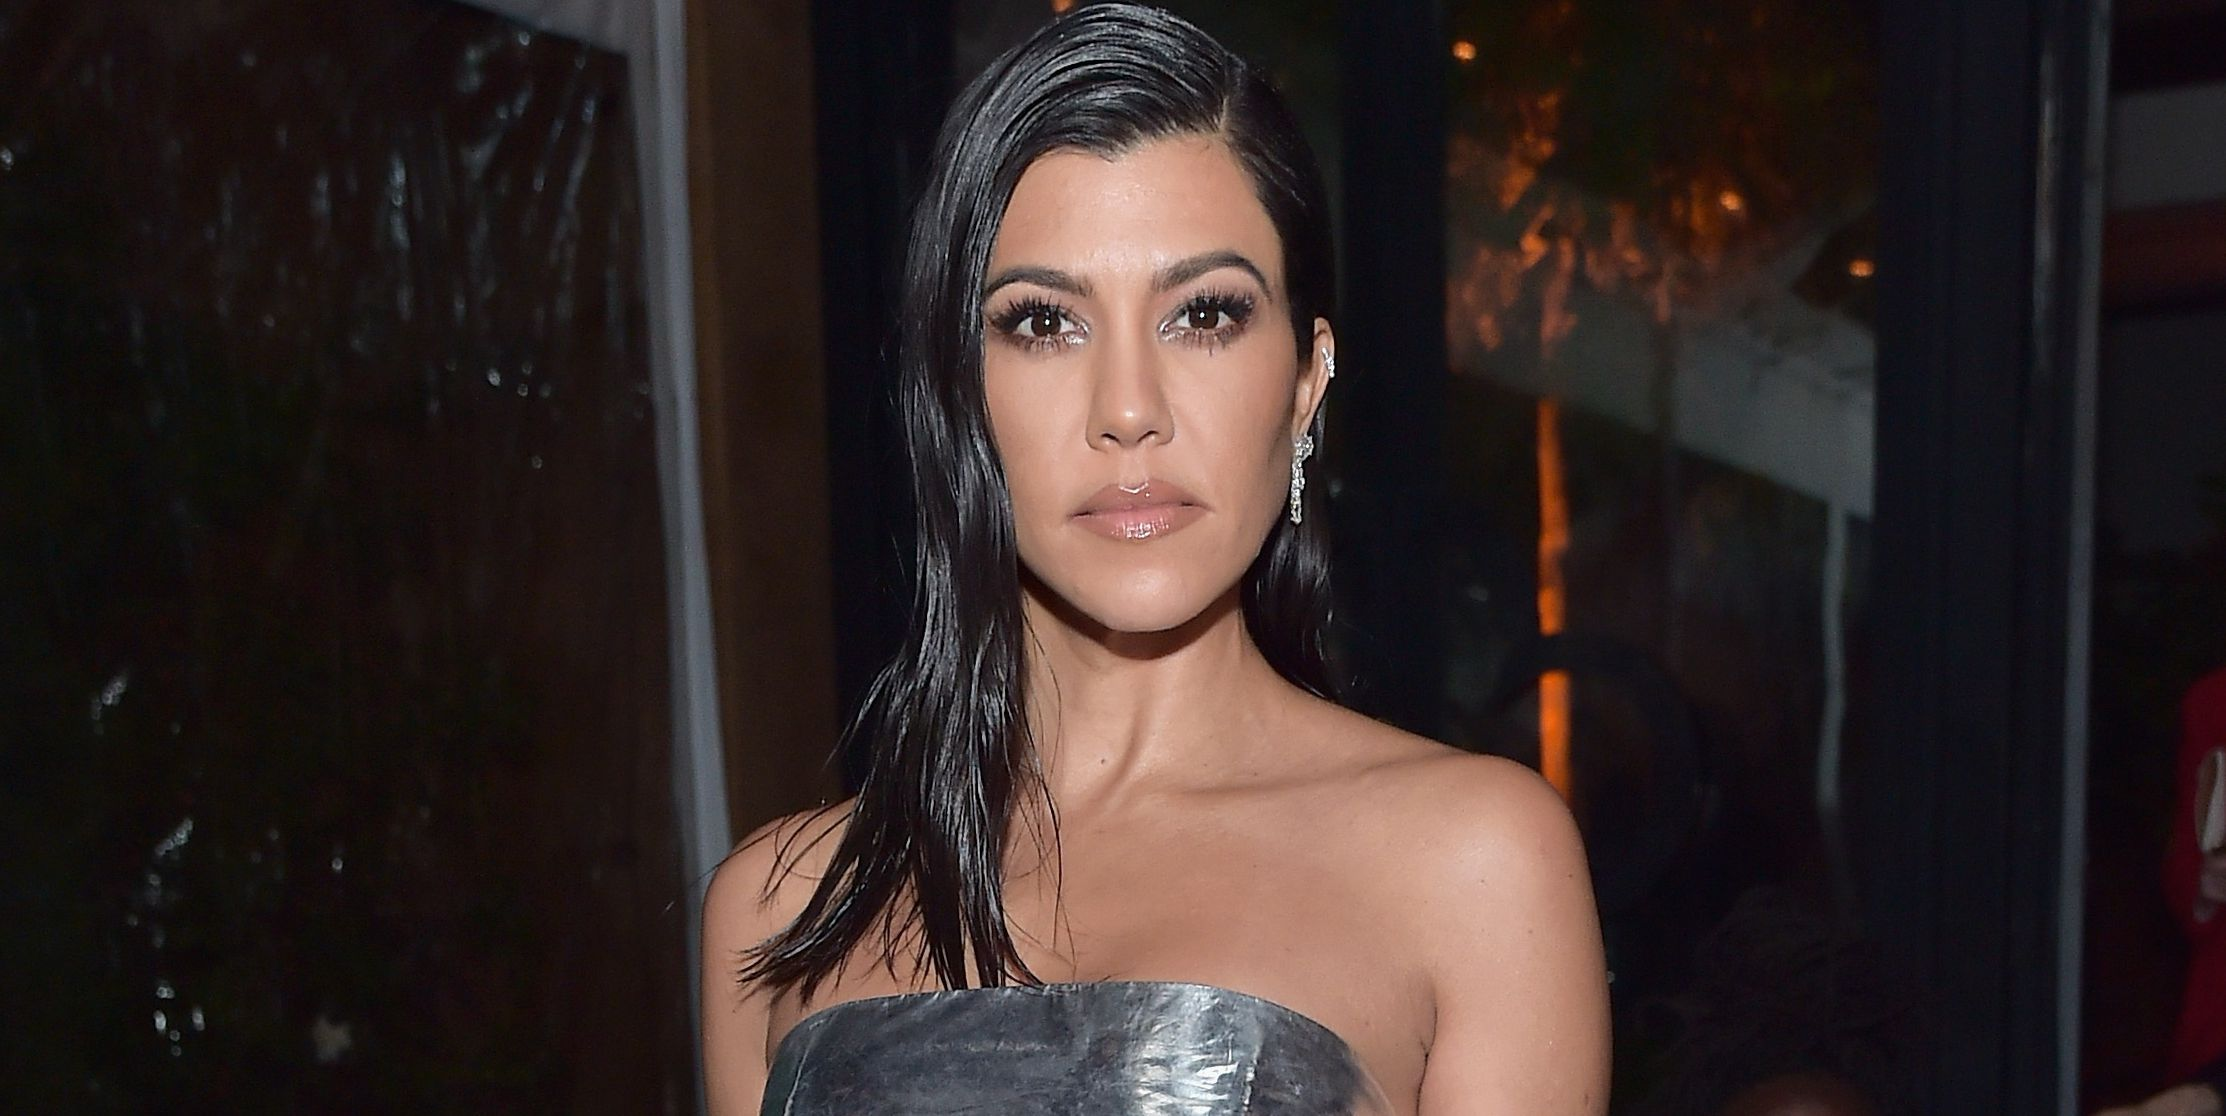 Kourtney Kardashian's Strapless Dress Is Giving Serious Tin Foil Vibes